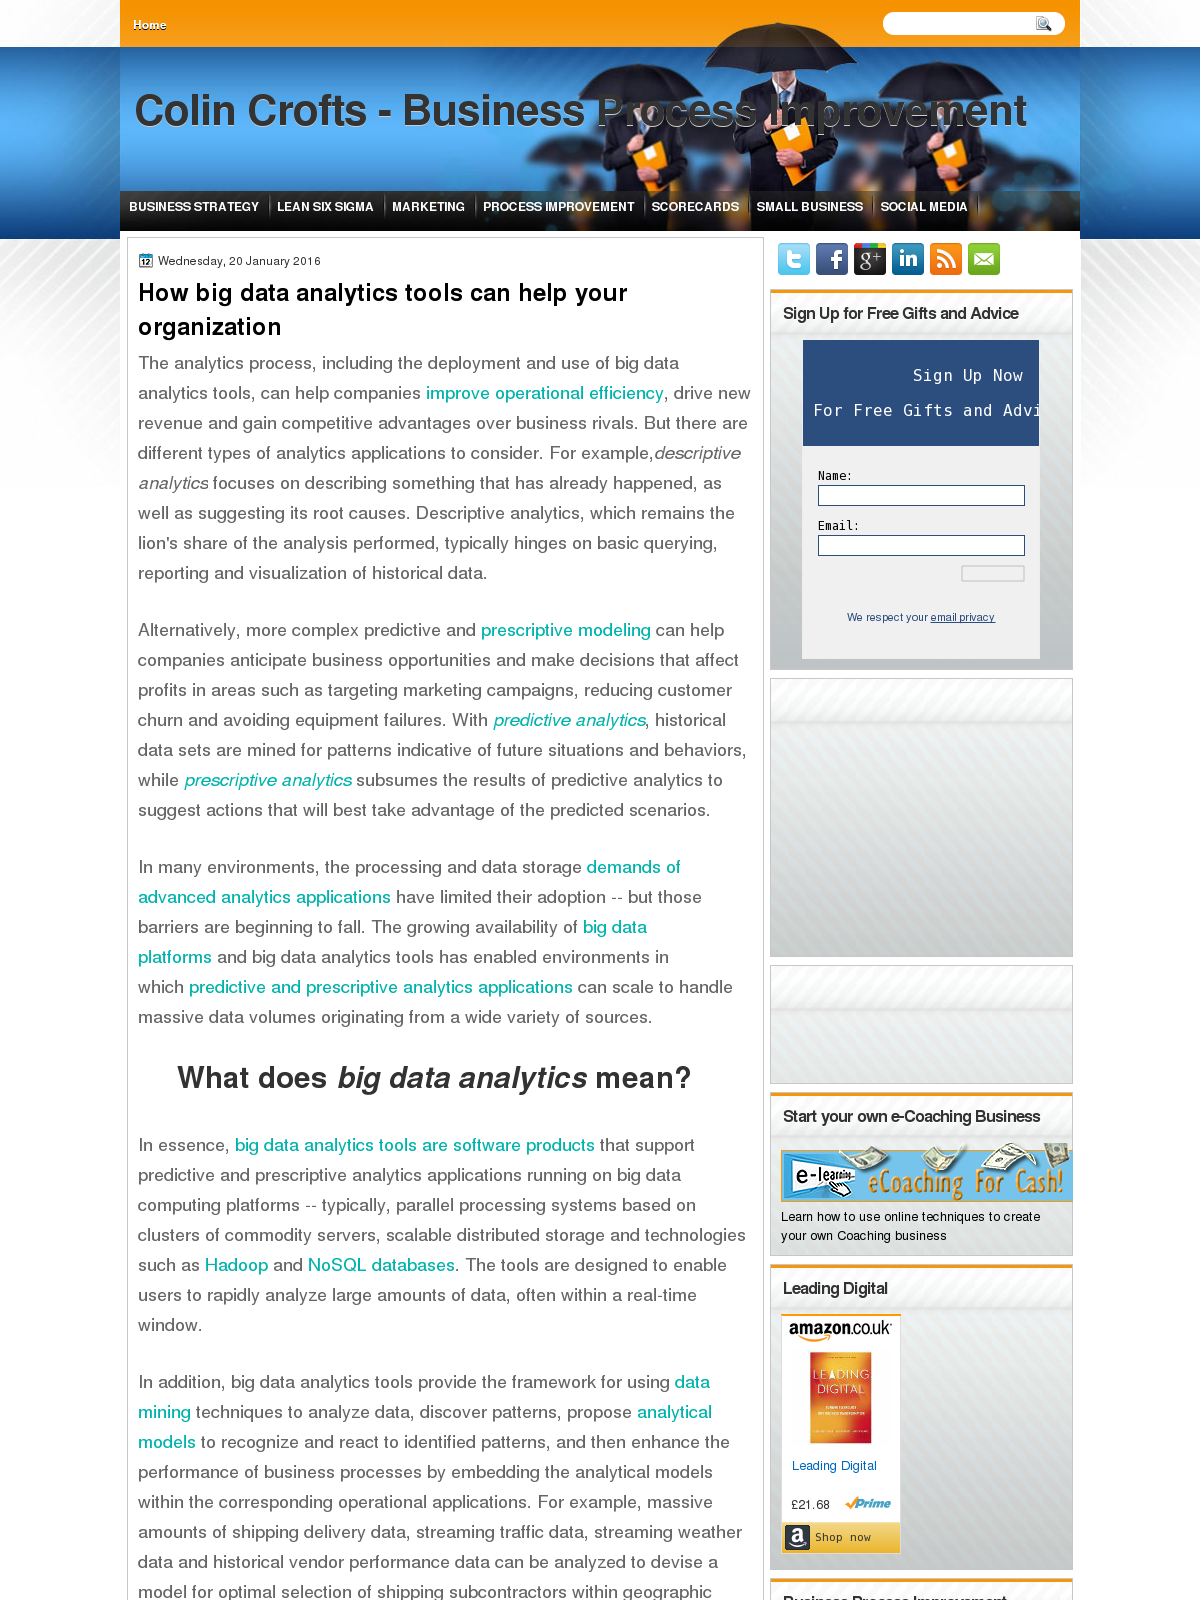 How big data analytics tools can help your organization - BPI ...